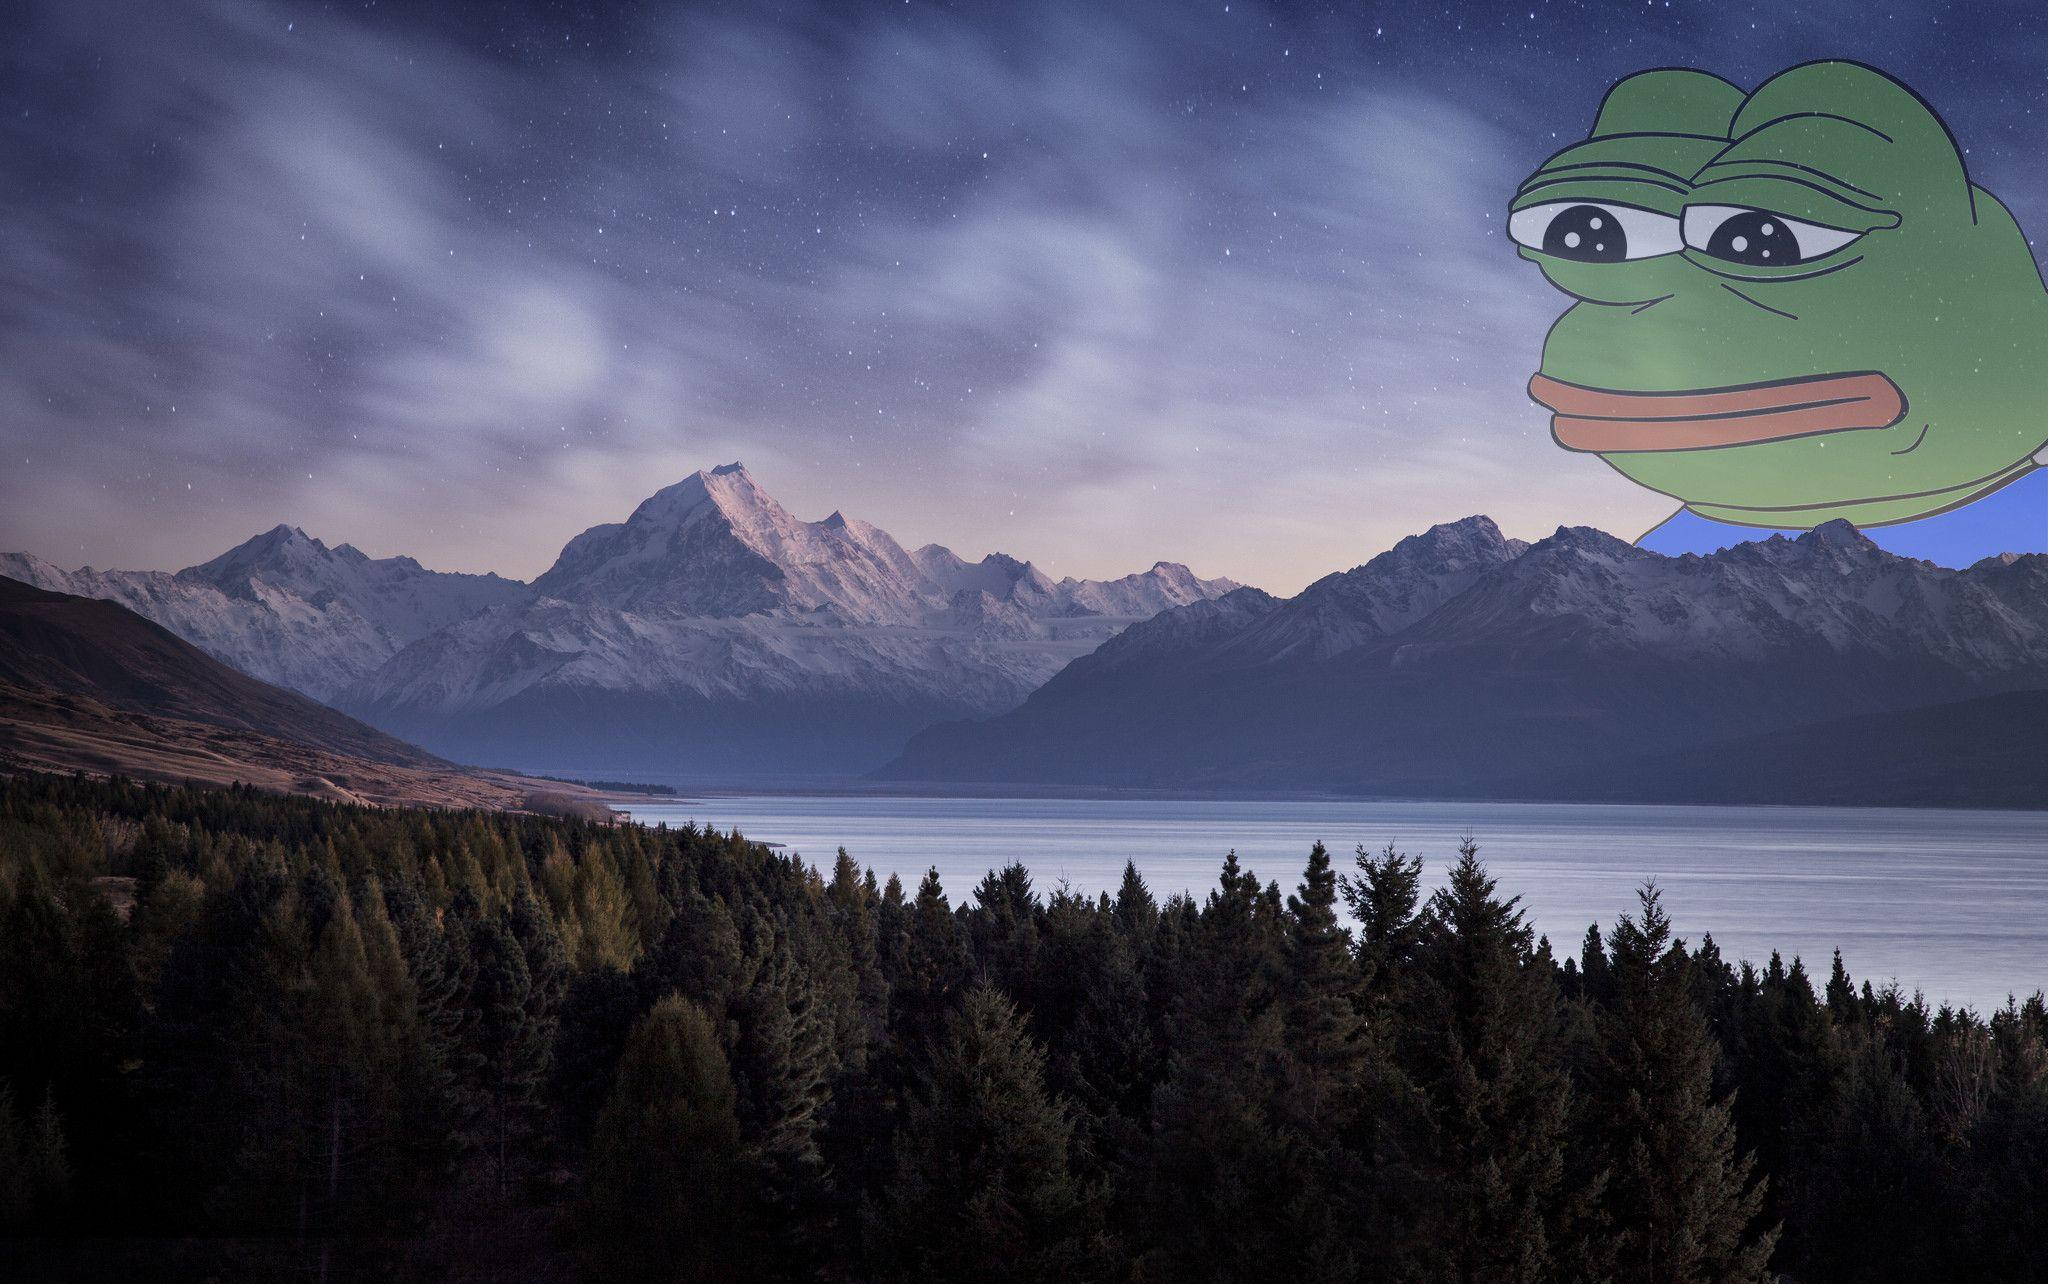 pepe the frog hd wallpaper - photo #30